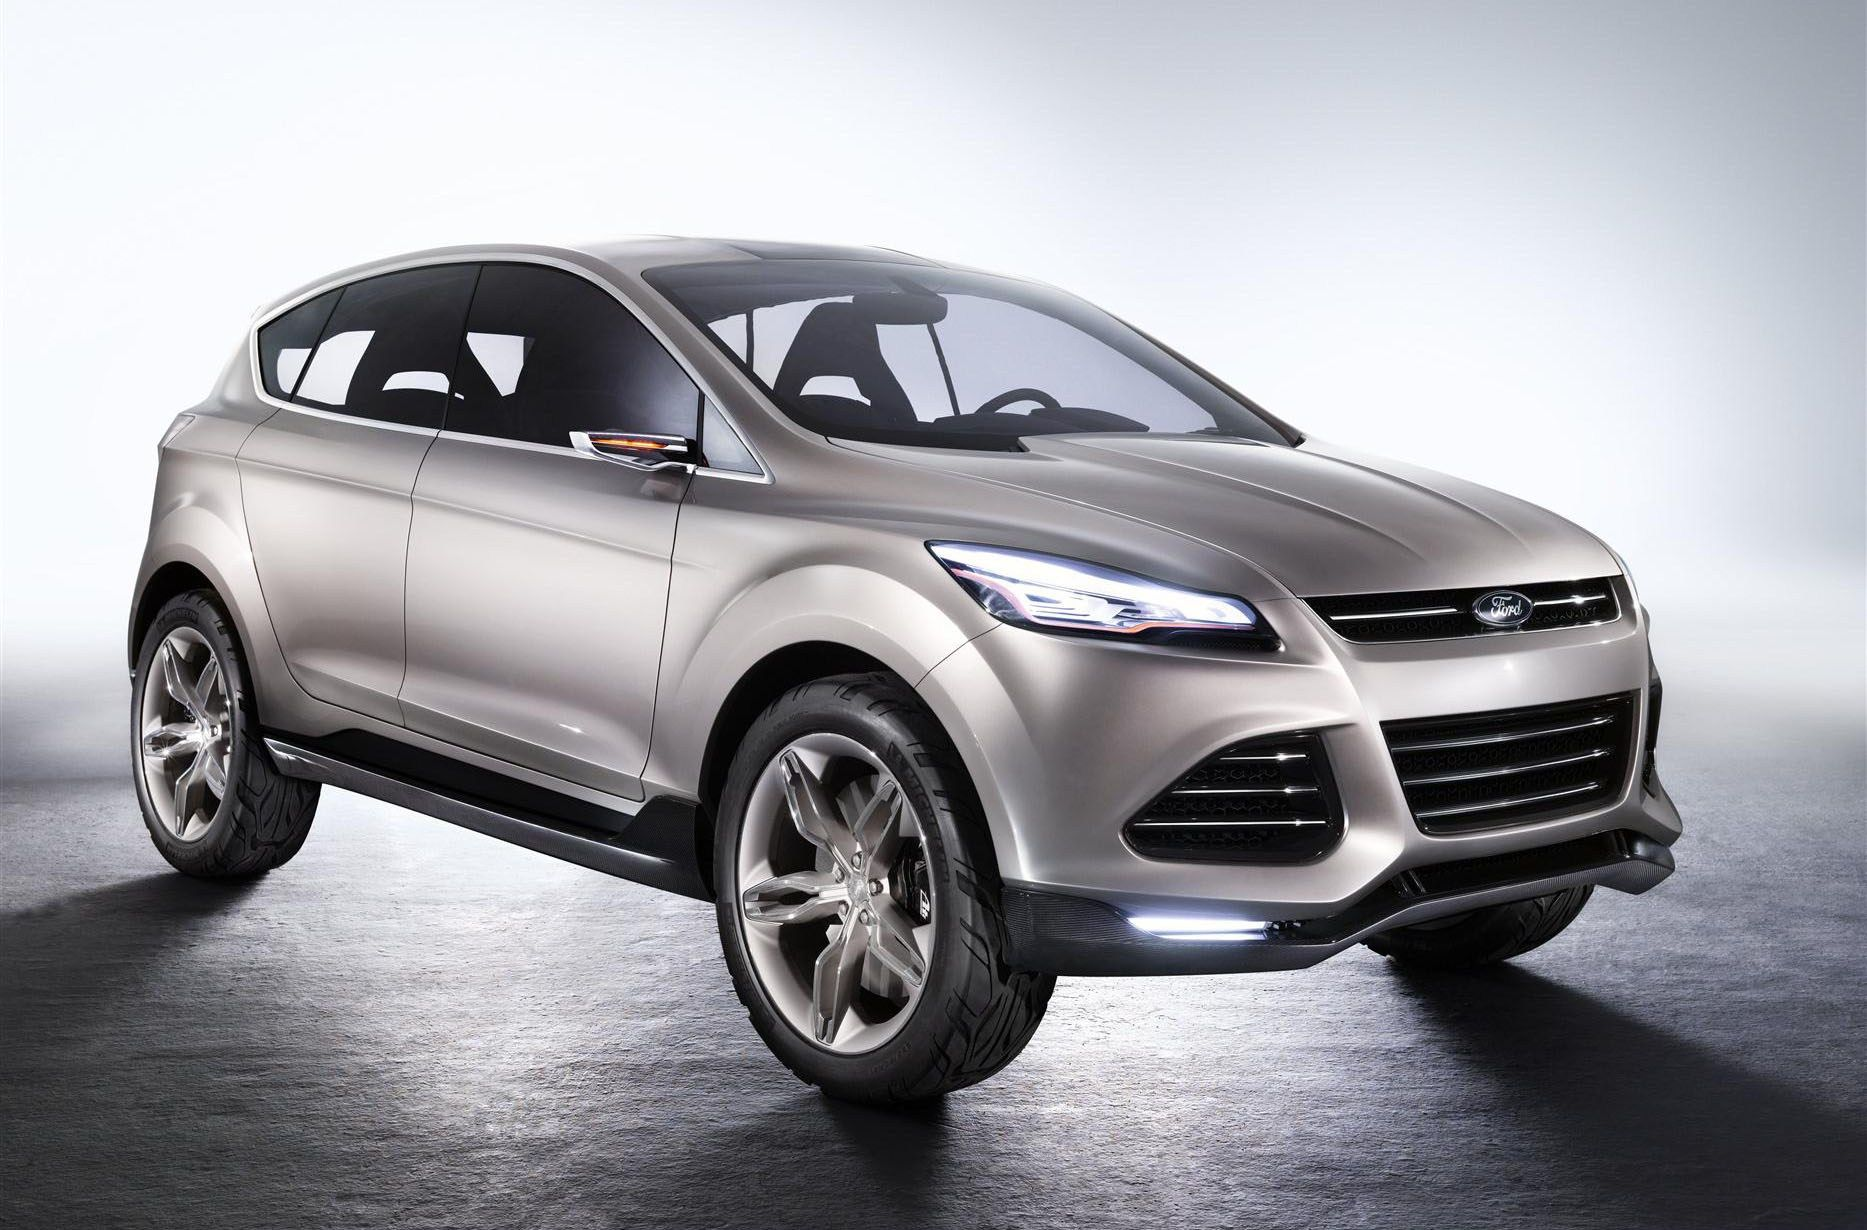 2020 Ford Escape Redesign Concept Price Release Date Rumor Car Rumor Ford Kuga Ford Escape Ford Suv